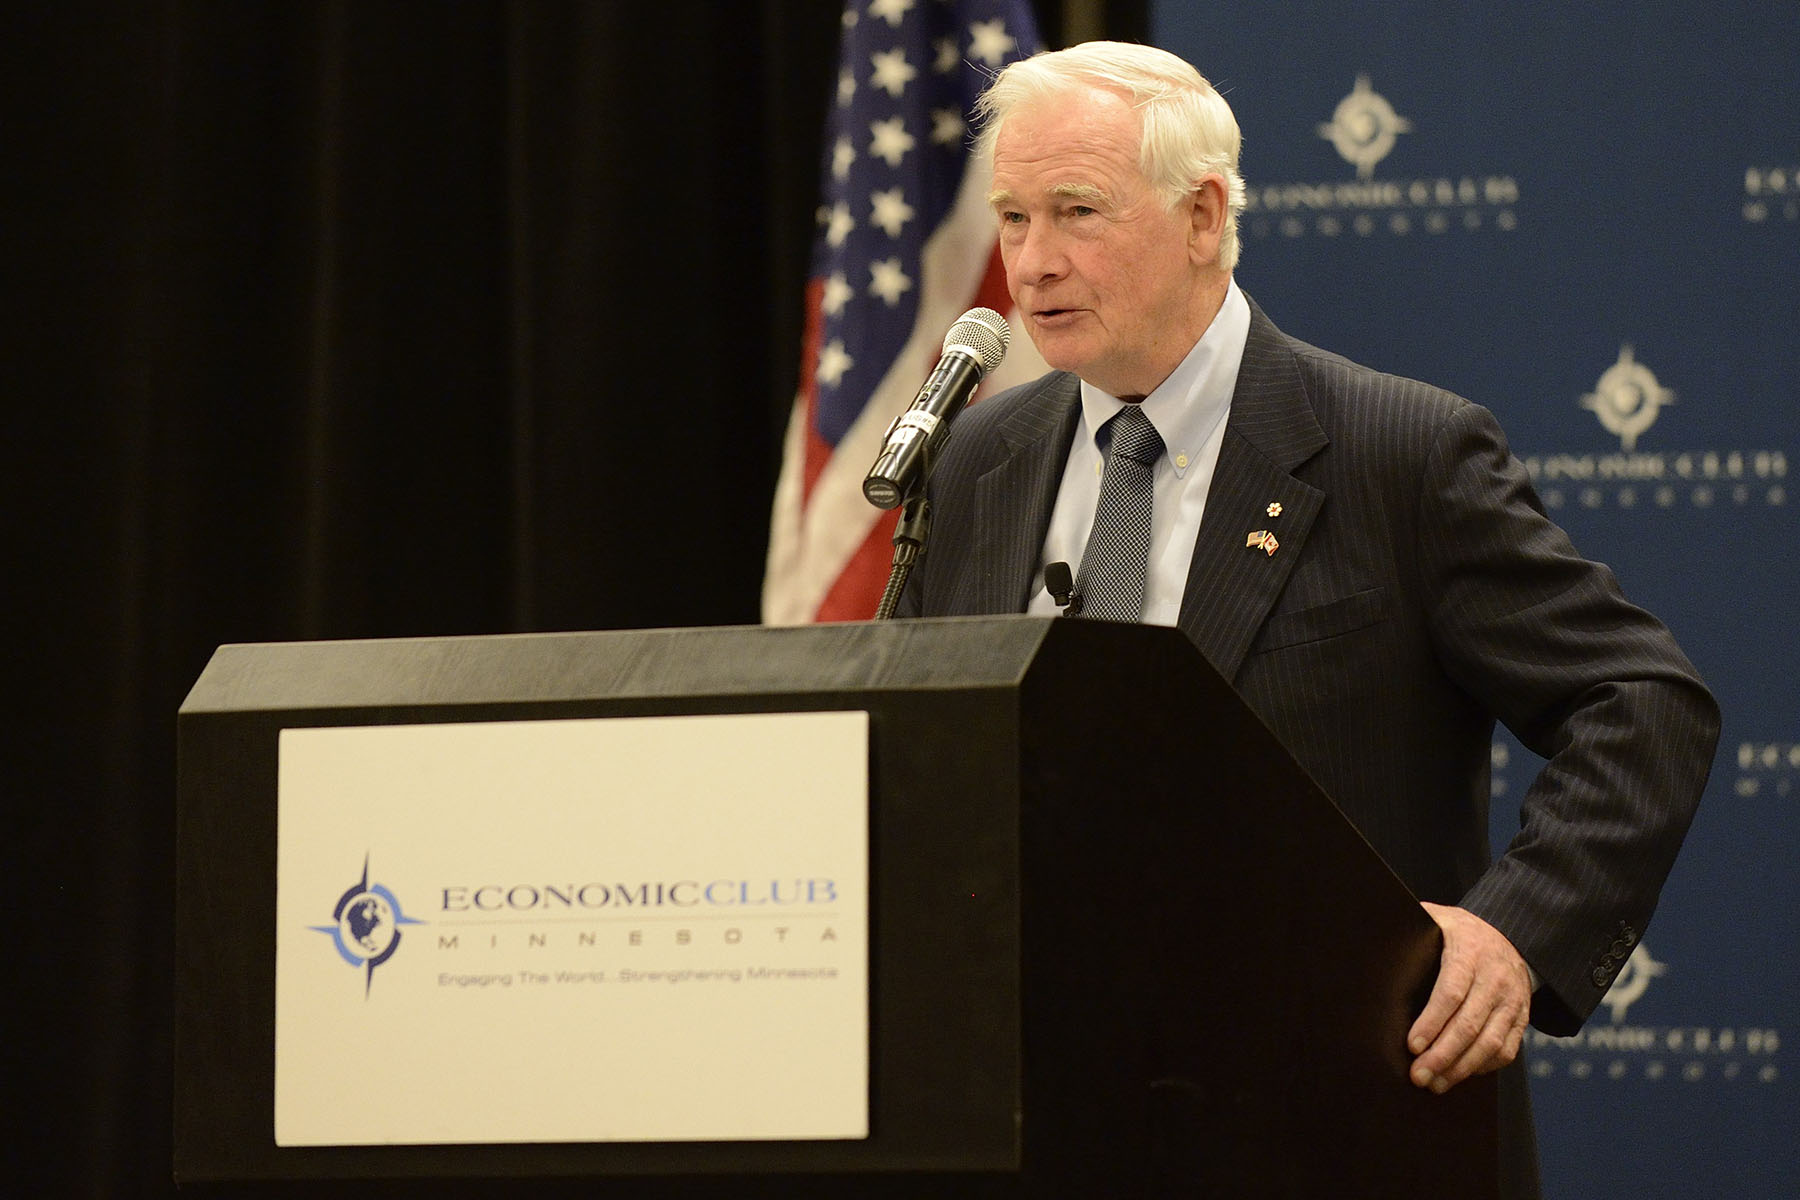 His Excellency then delivered an address during a luncheon organised by the Economic Club of Minnesota on the need to share knowledge across borders and disciplines in today's world to meet complex, interrelated challenges.